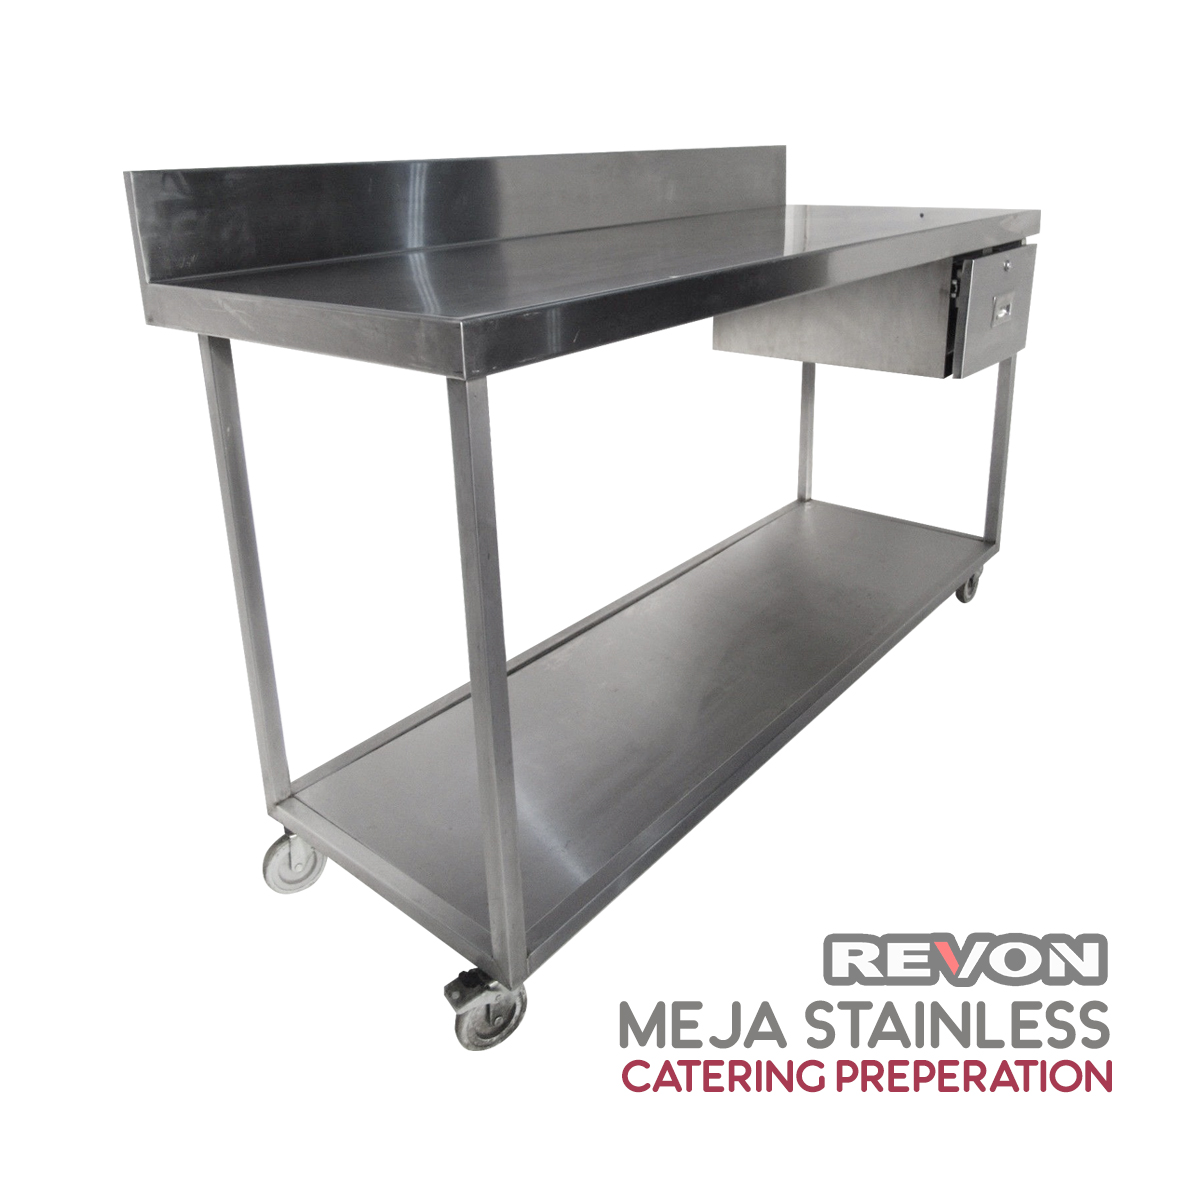 Meja Stainless Steel Catering Preperation